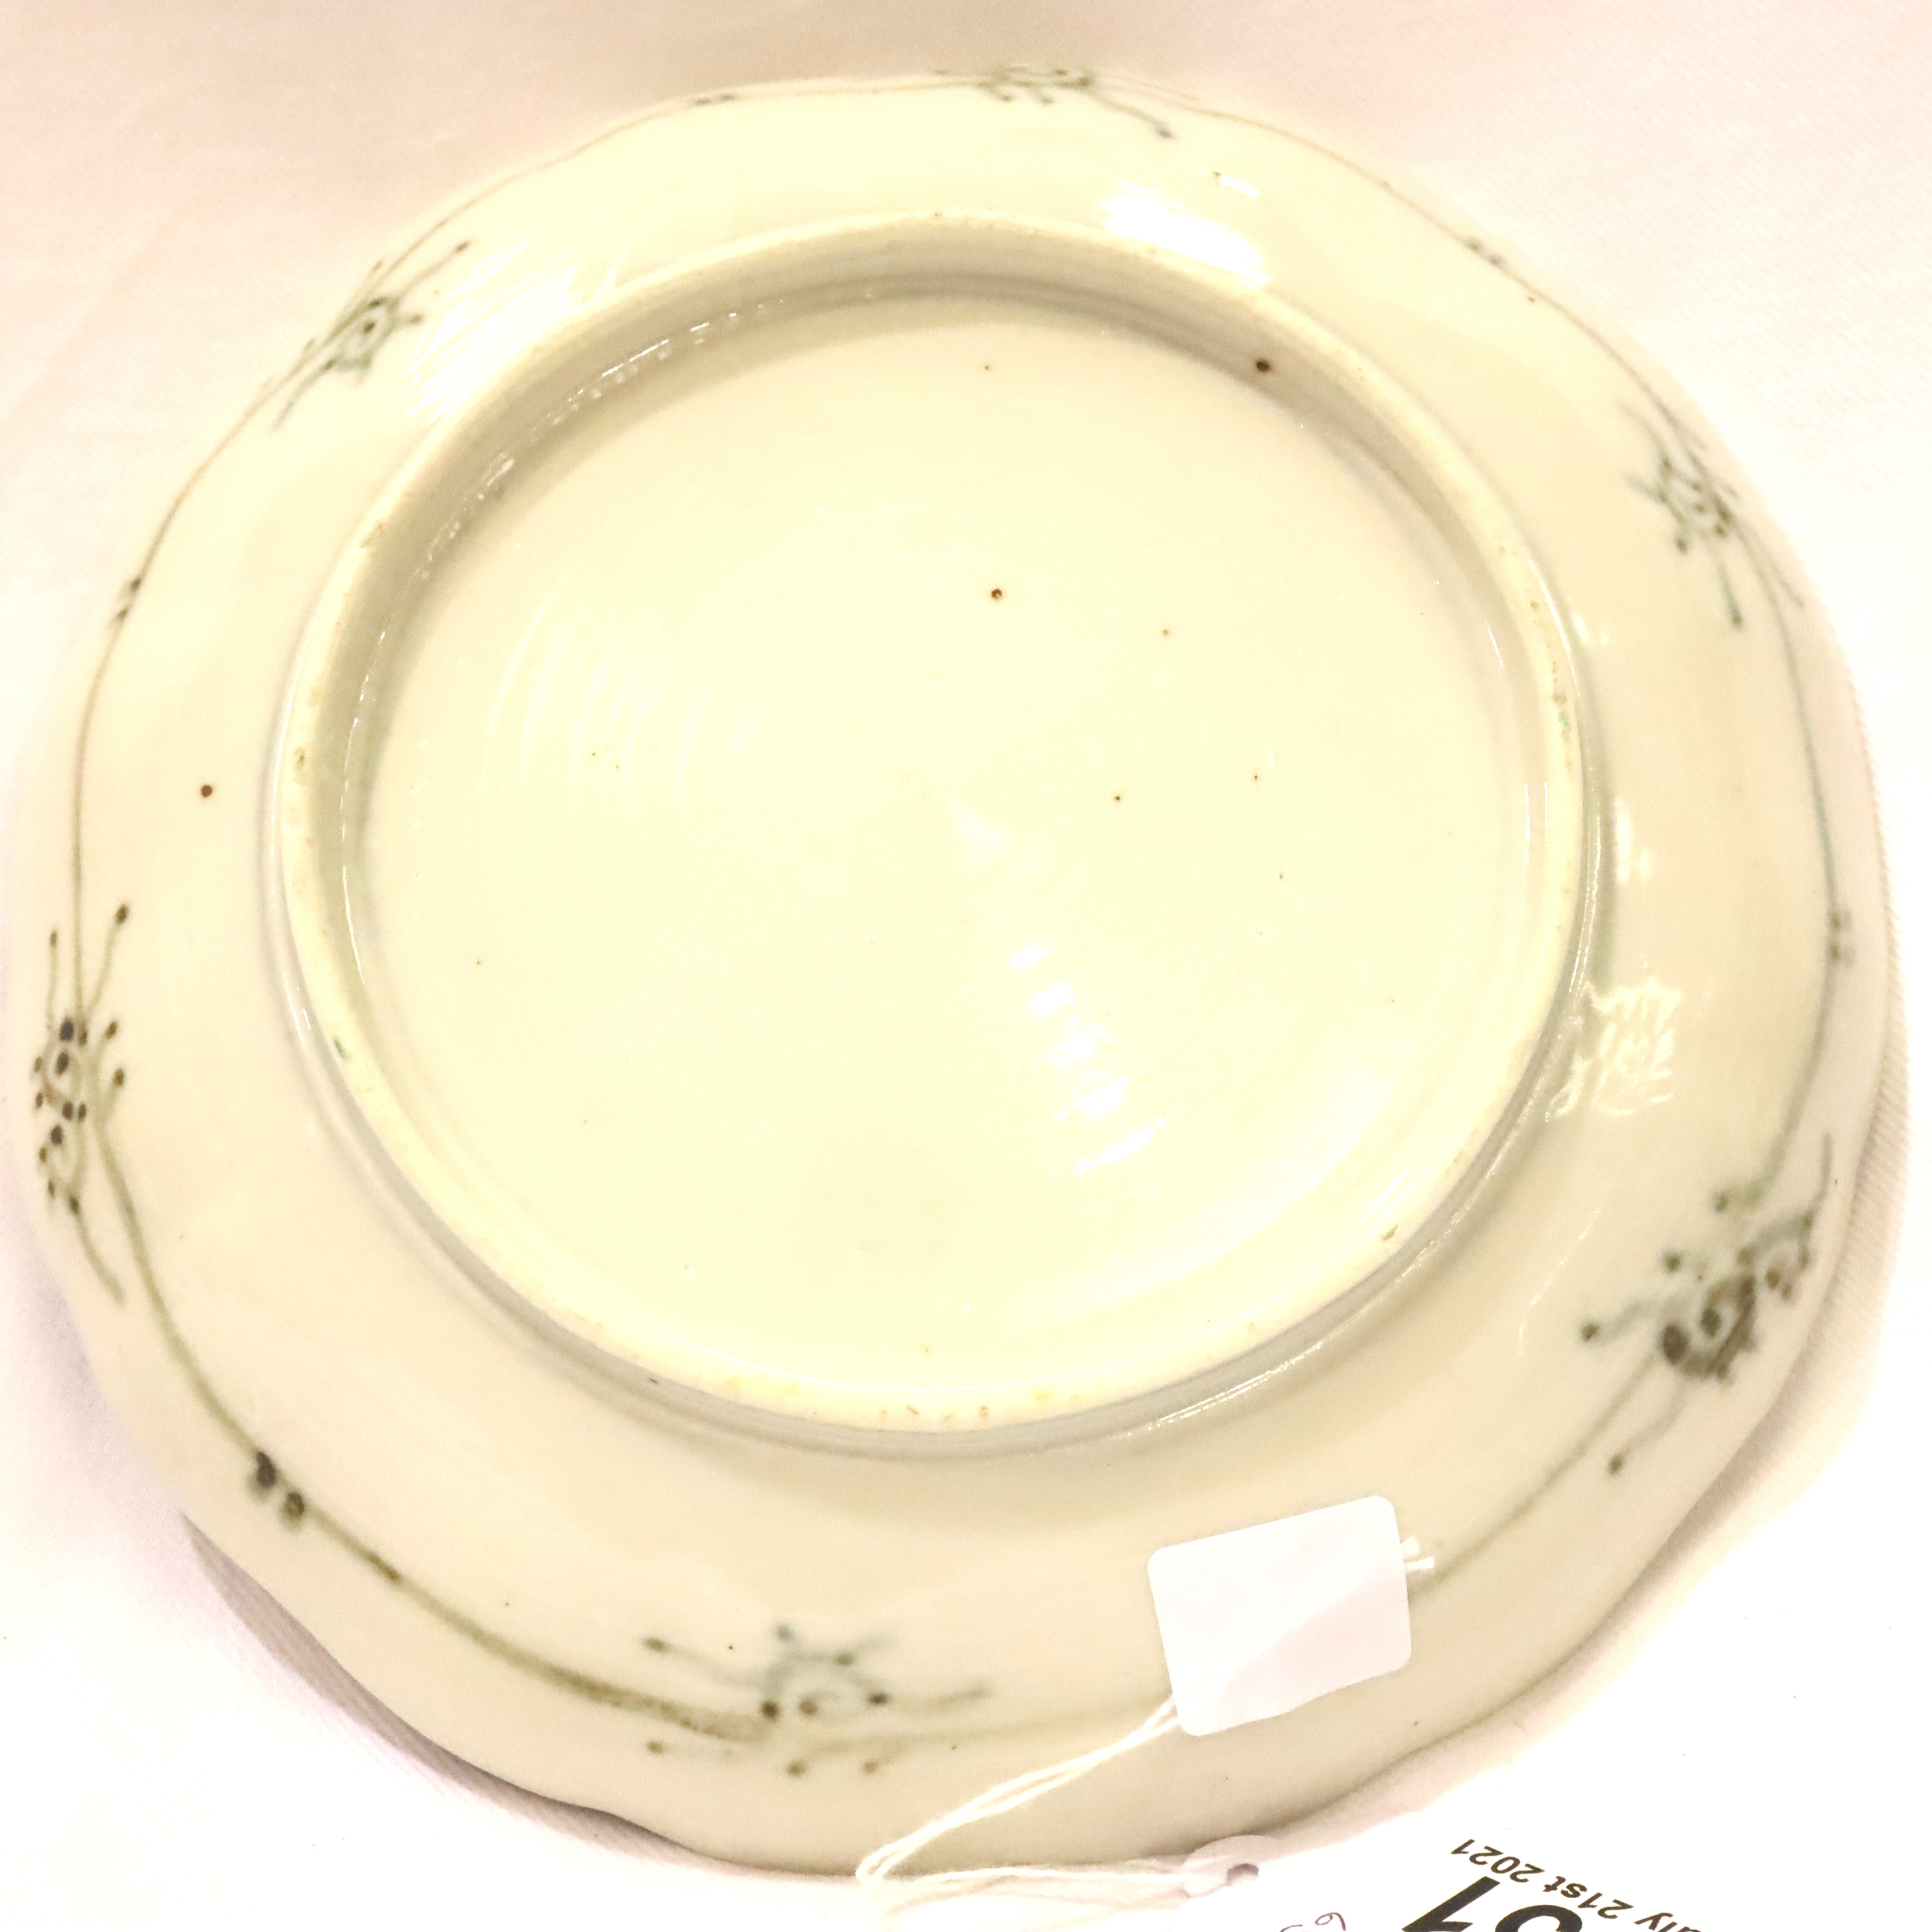 Japanese 19th century cabinet plate, D: 21 cm. P&P Group 2 (£18+VAT for the first lot and £3+VAT for - Image 3 of 3